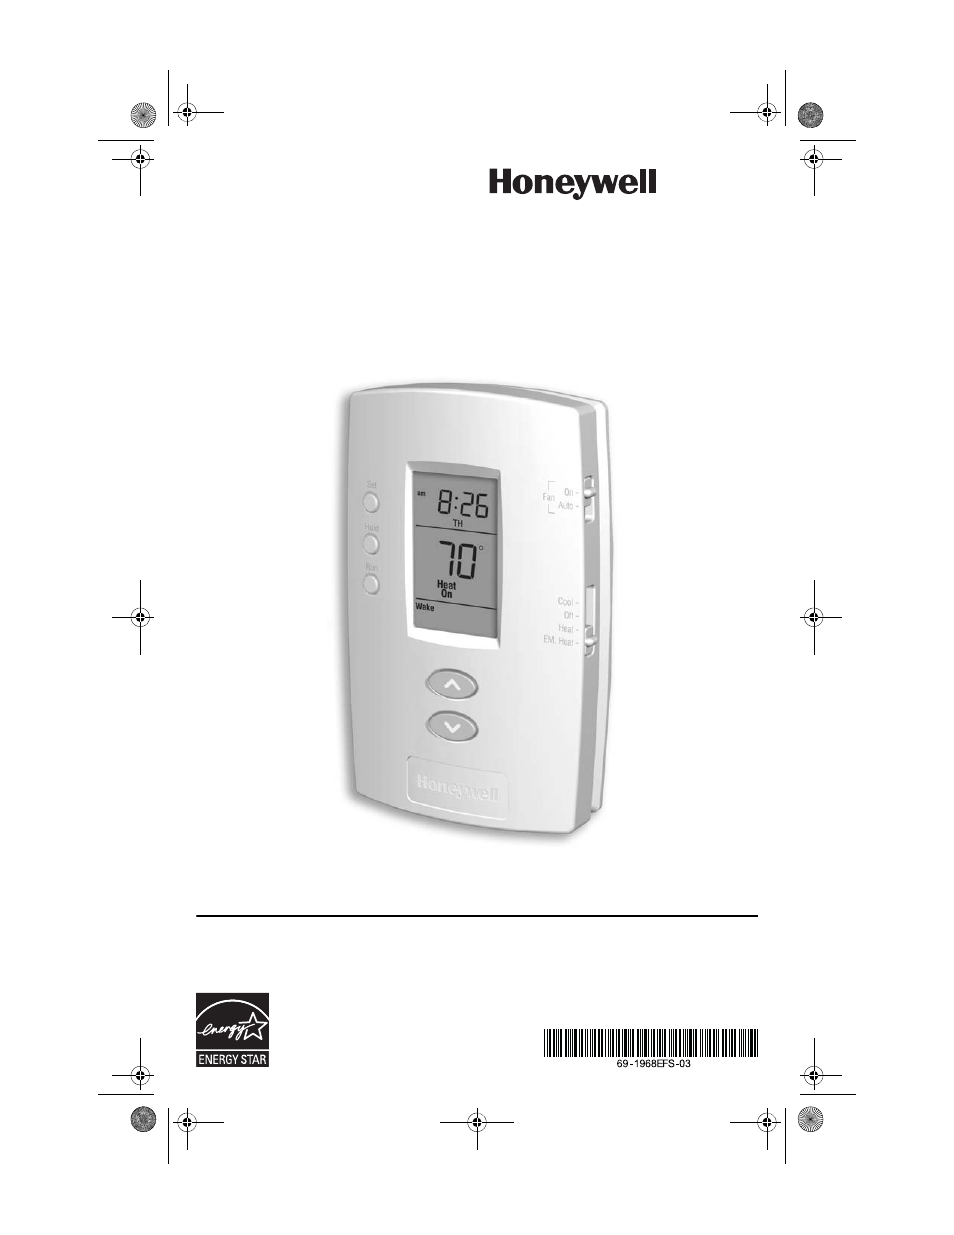 Honeywell Thermostat Pro 3000 Installation Guide Manual Guide